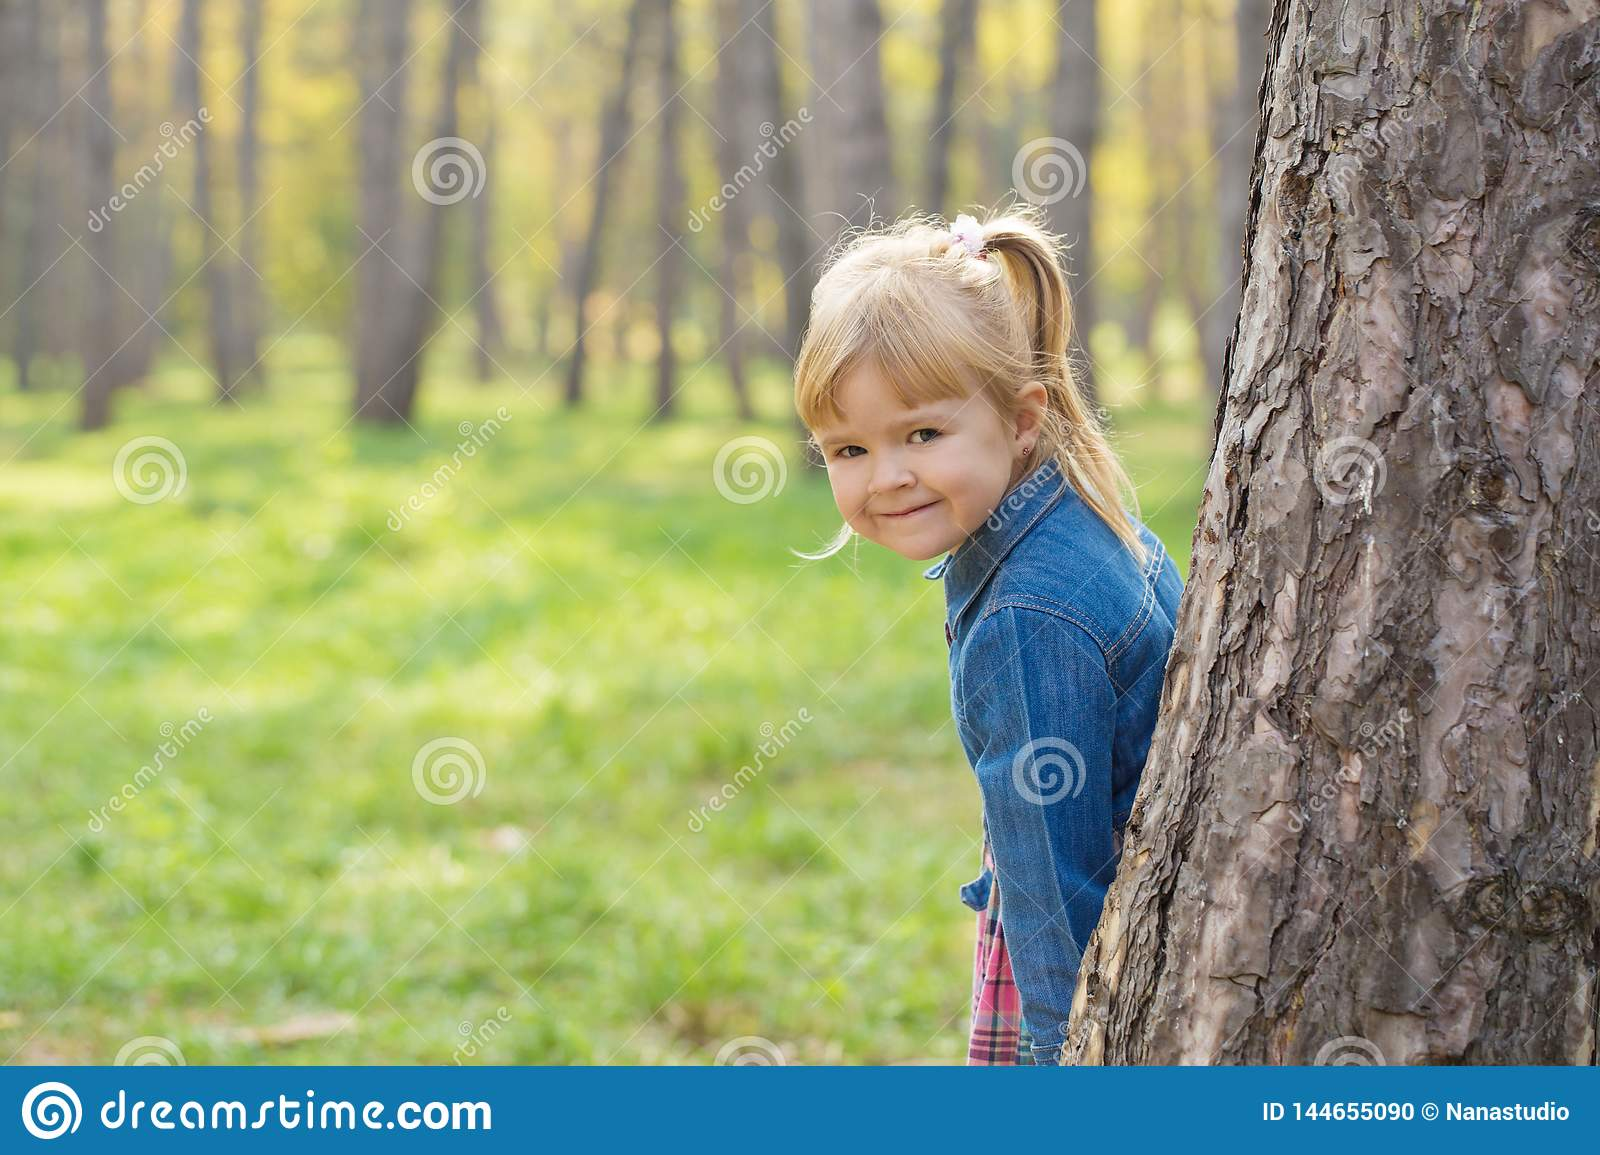 Portrait of a happy little girl with a smile on her face hiding behind a tree